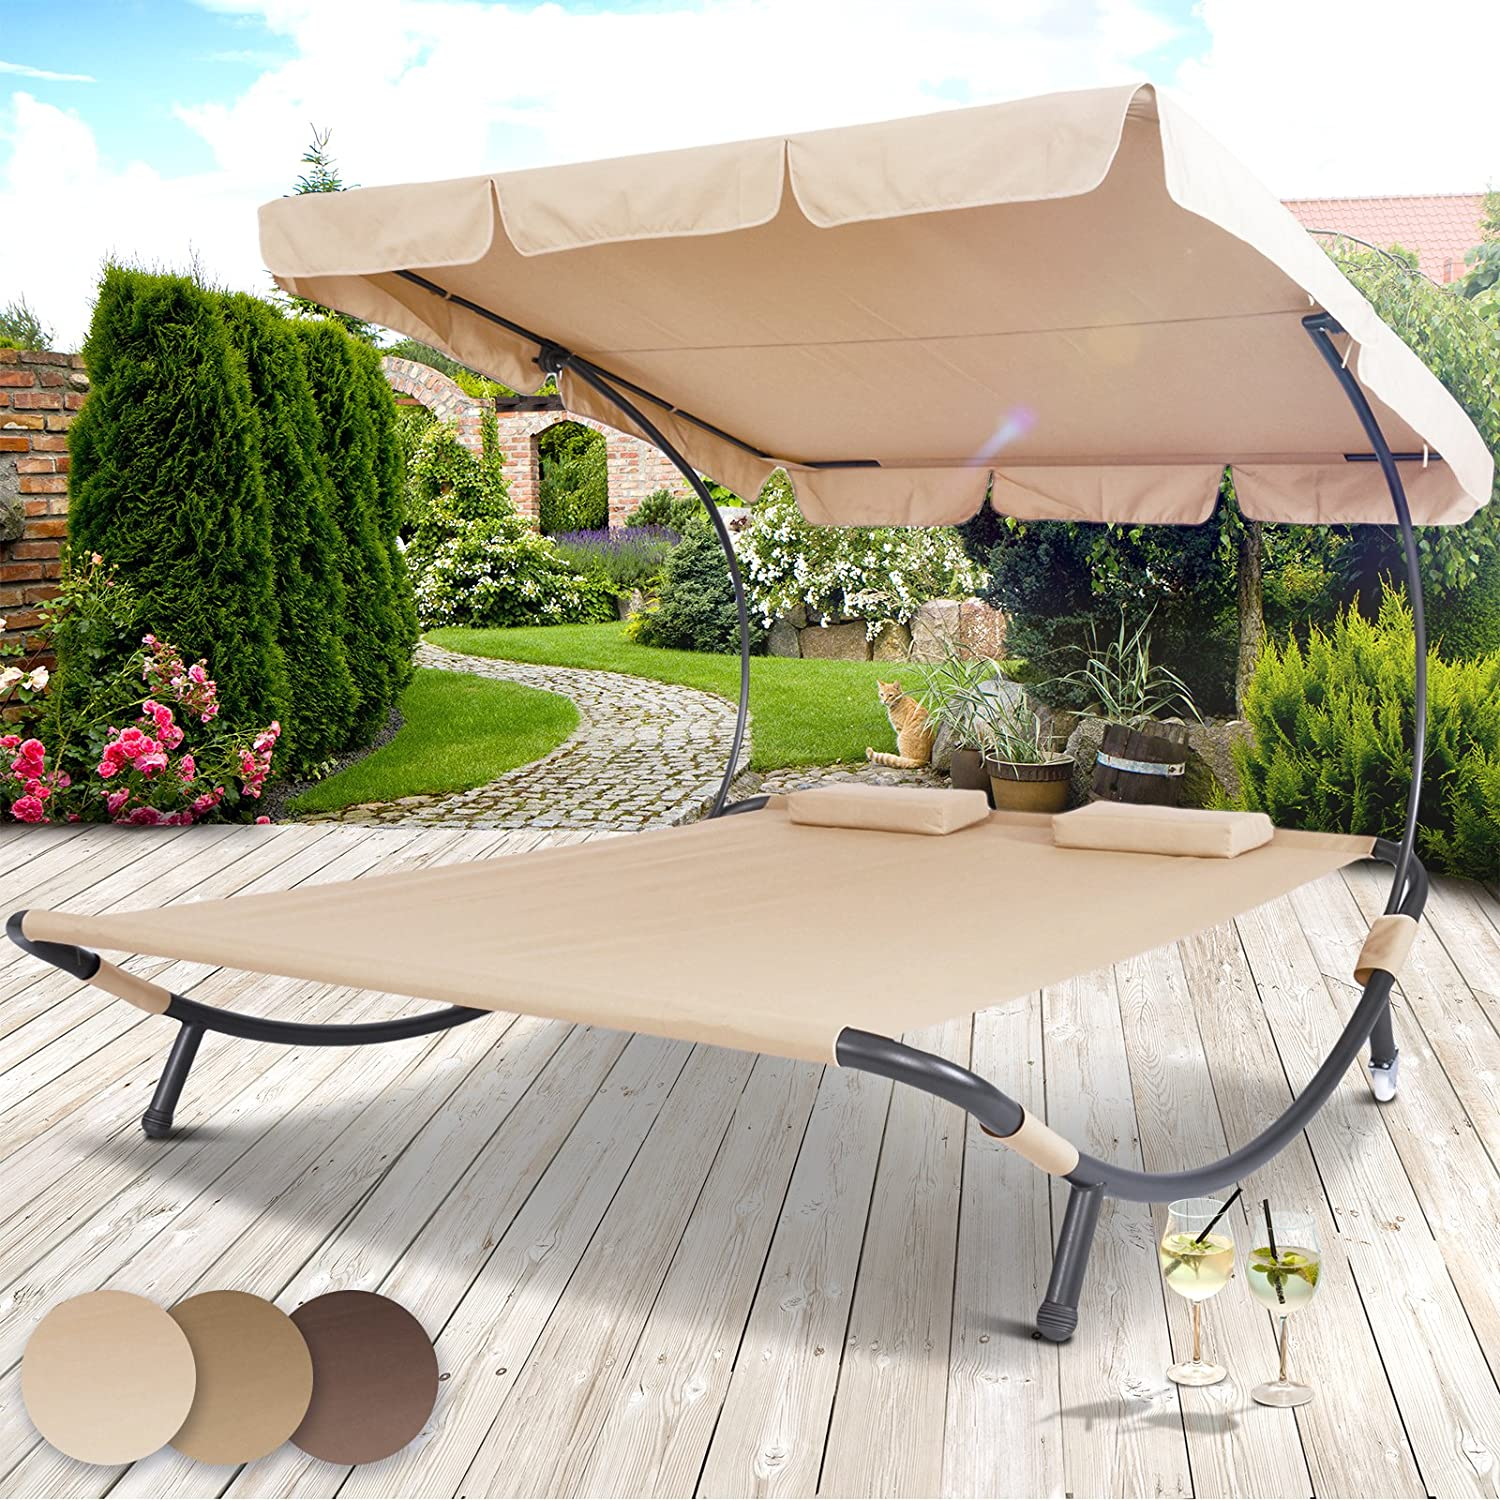 miadomodo sun lounger double day bed hammock chaise outdoor shade canopy garden furniture in different colours amazoncouk garden outdoors - Garden Furniture Colours